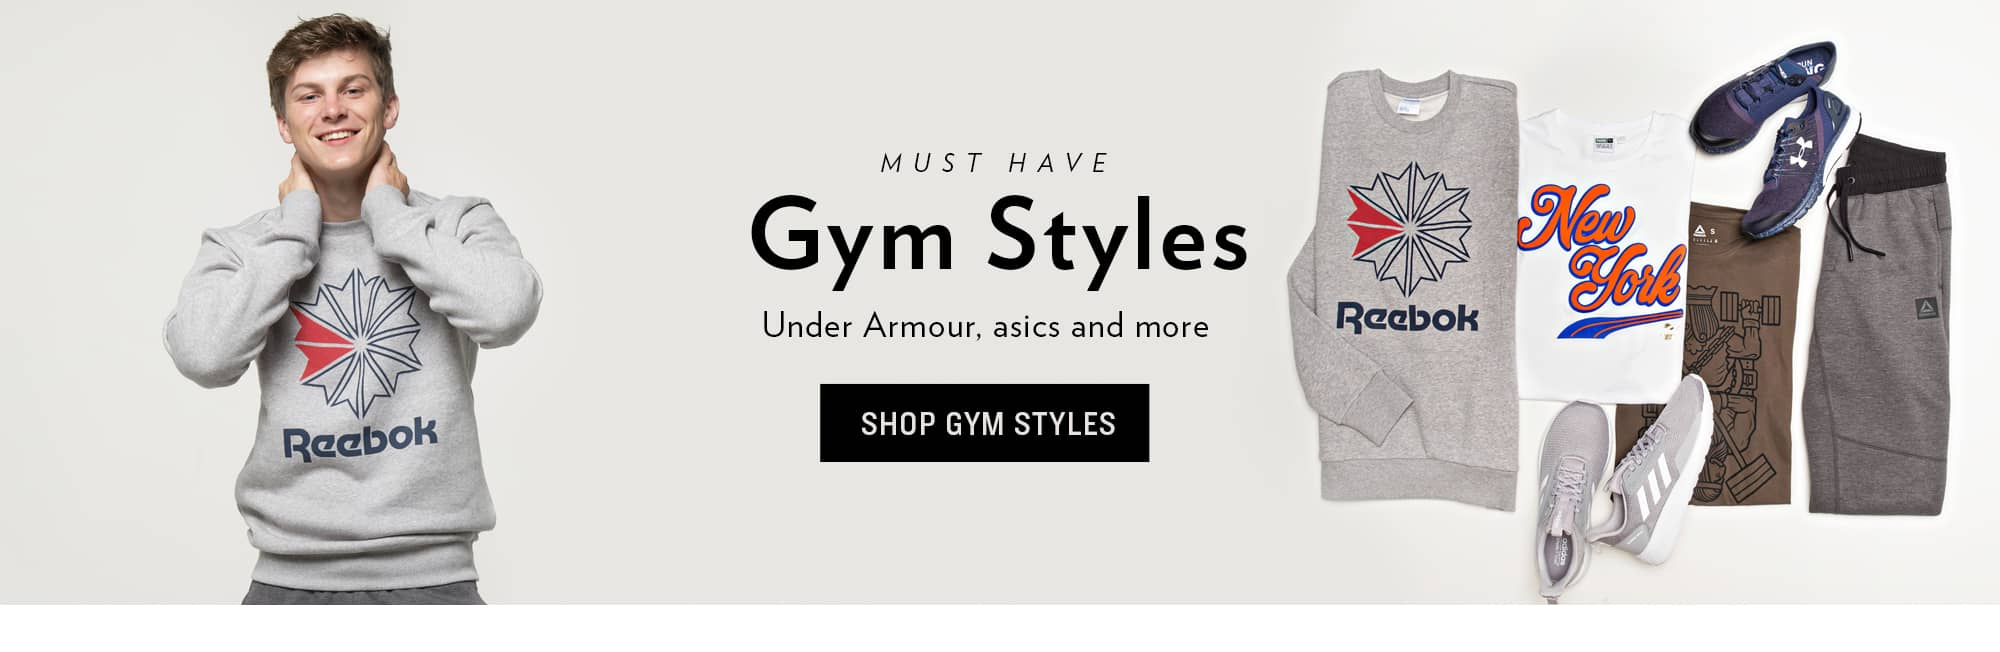 Shop Gym Styles